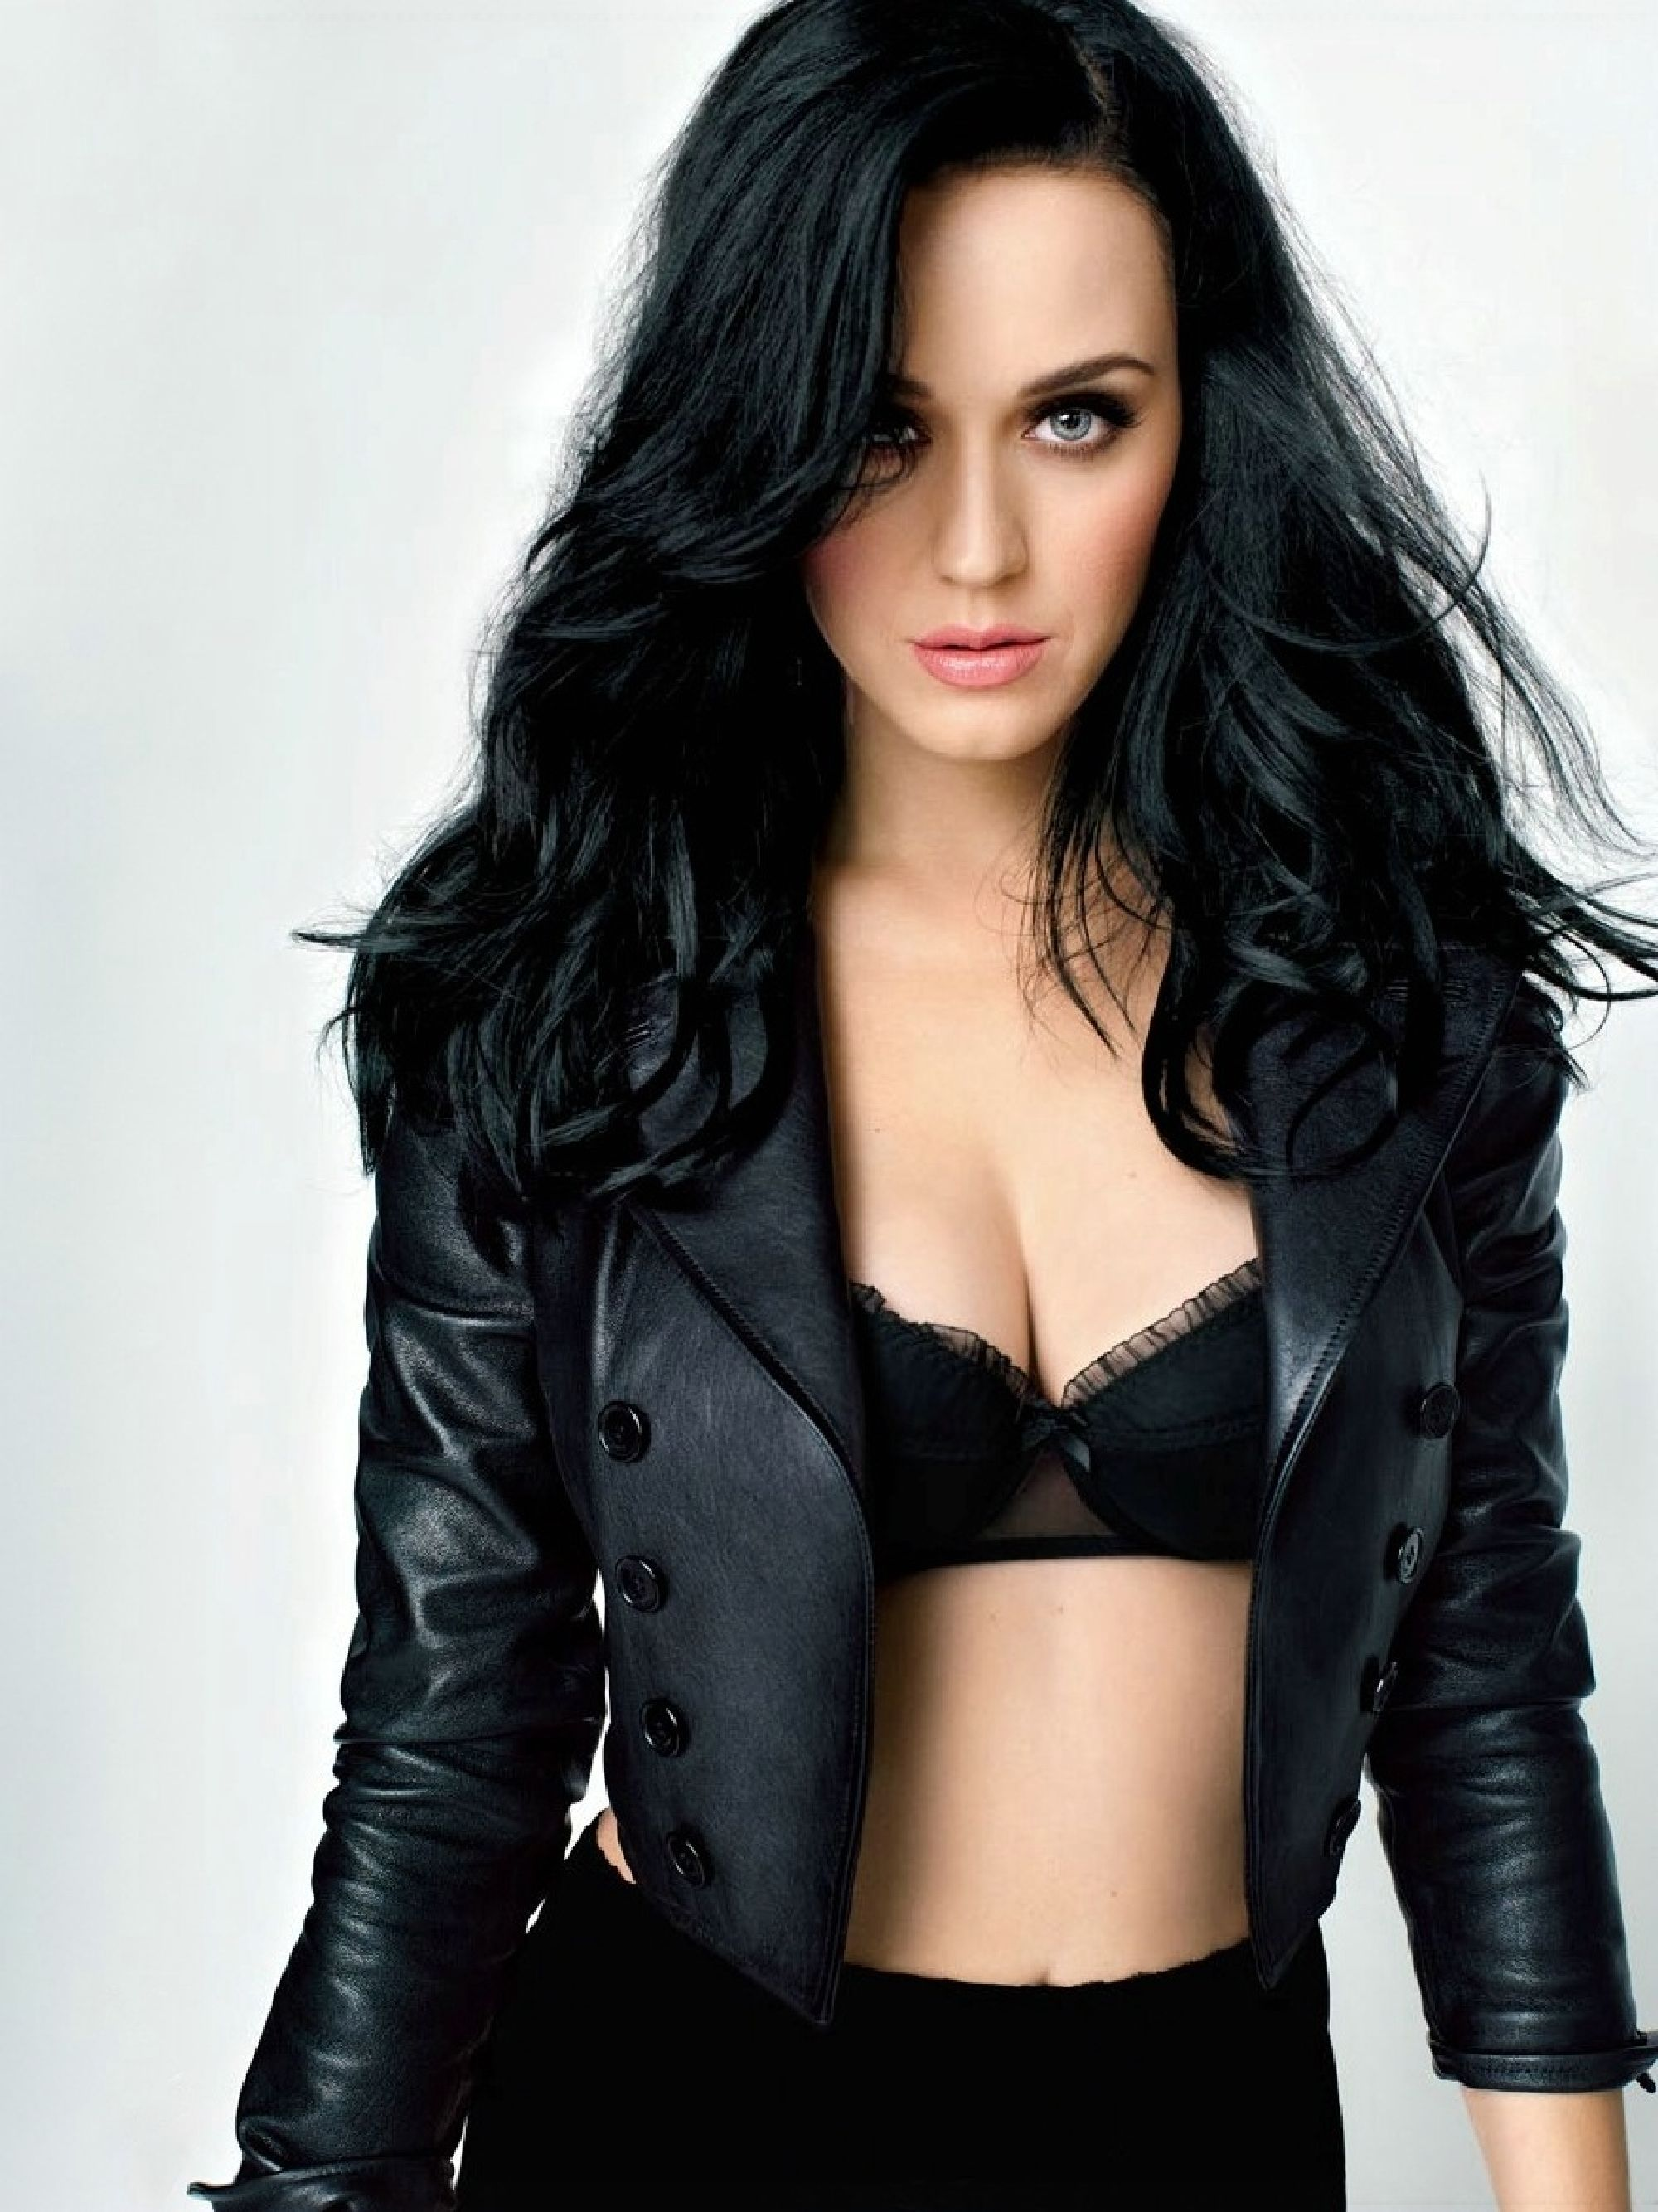 Katy perry katy perry pinterest katy perry and celebs